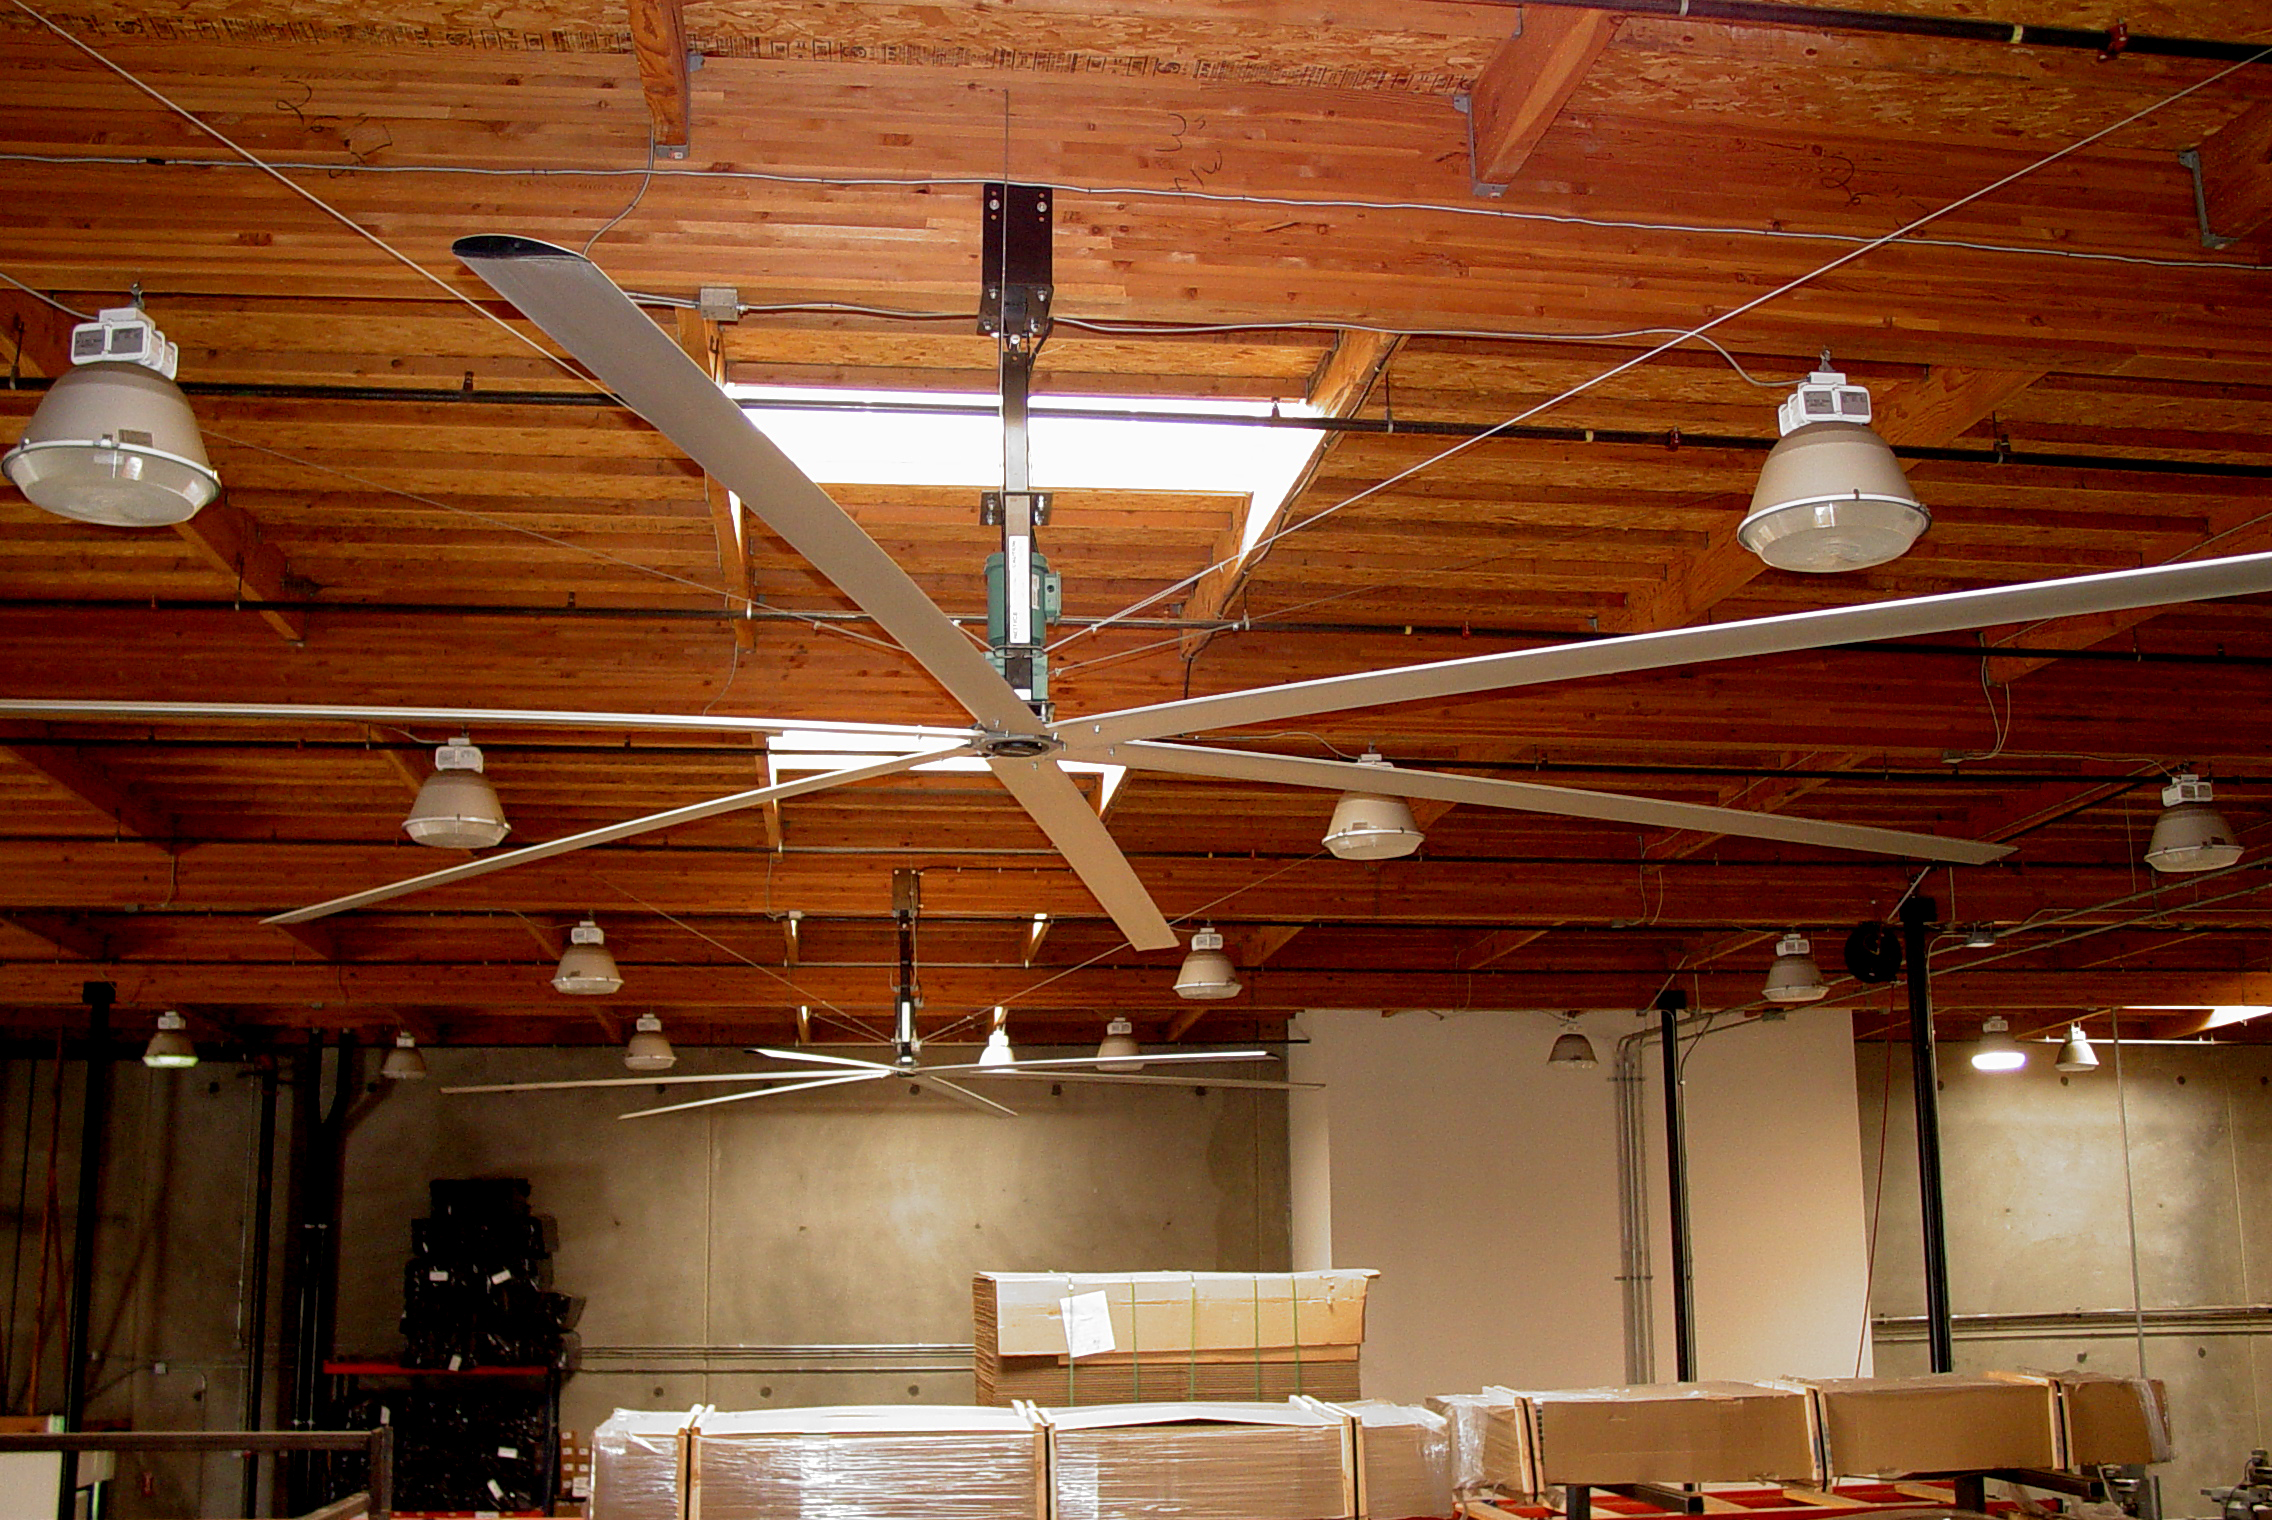 Hvls ceiling fans Great Airflow Efficiency For Your Home